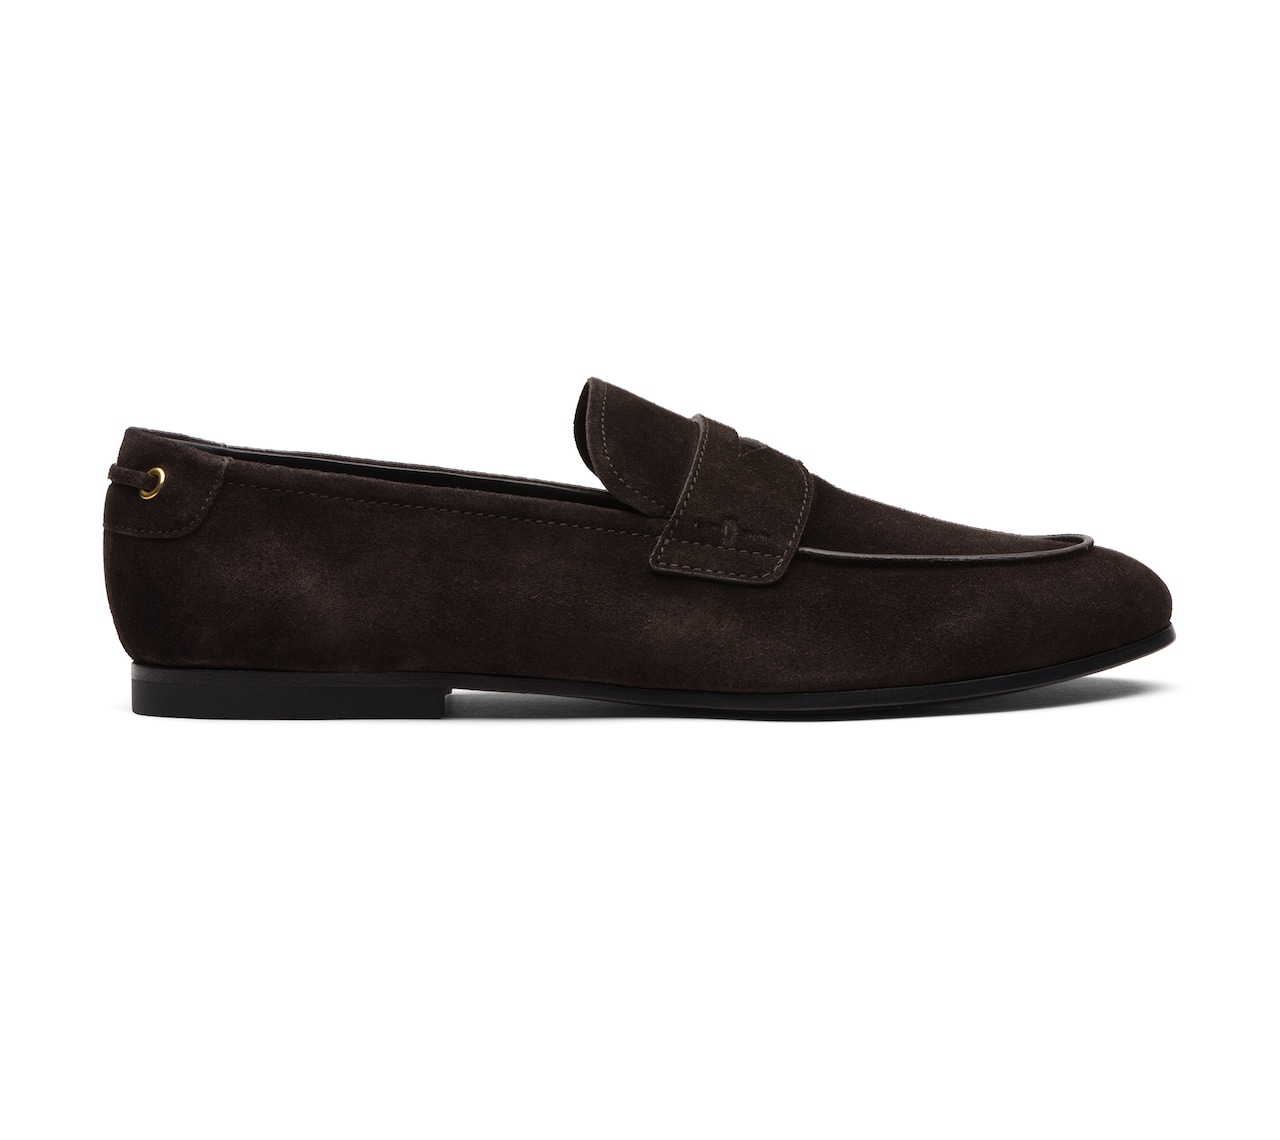 SUEDE MOCASSINS BROWN